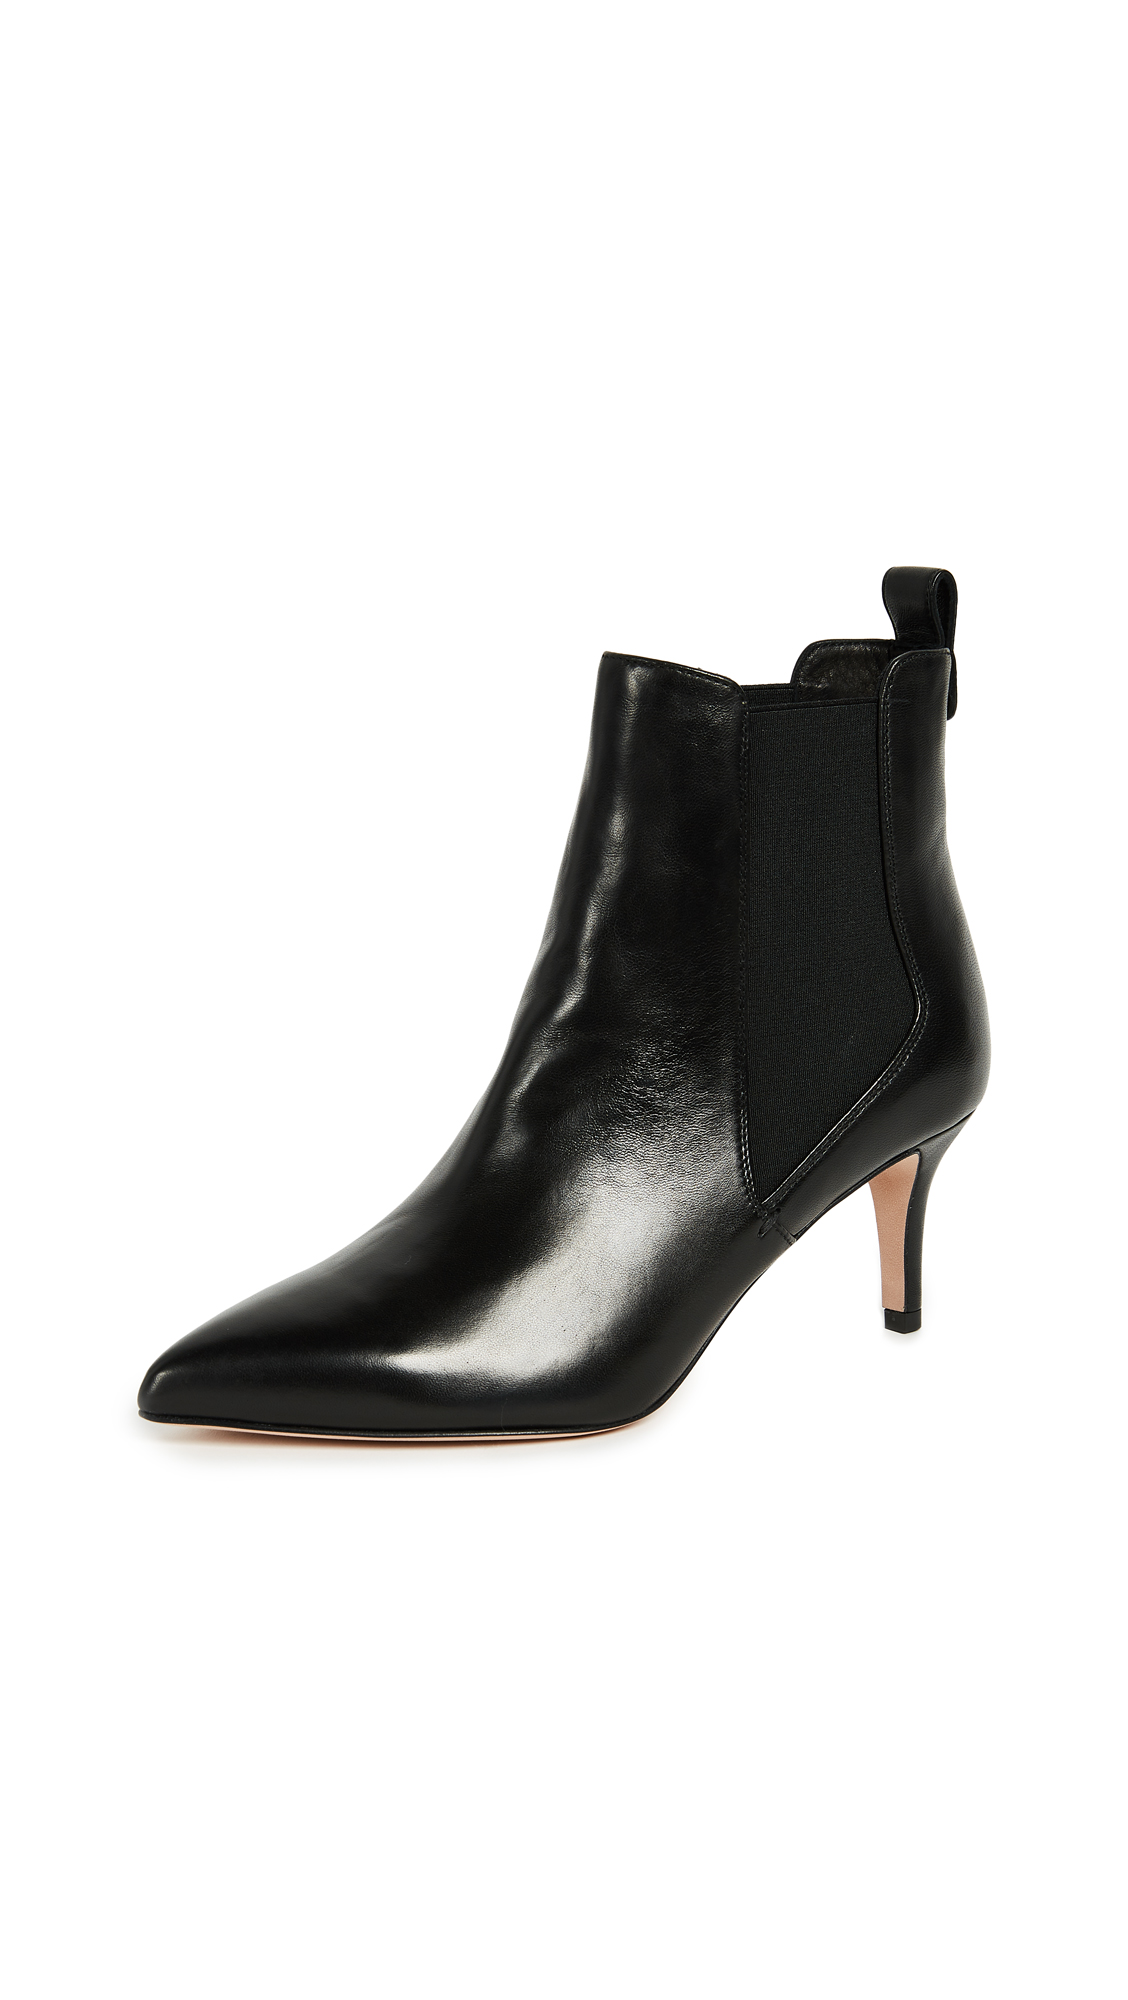 Veronica Beard Parker Chelsea Booties - Black